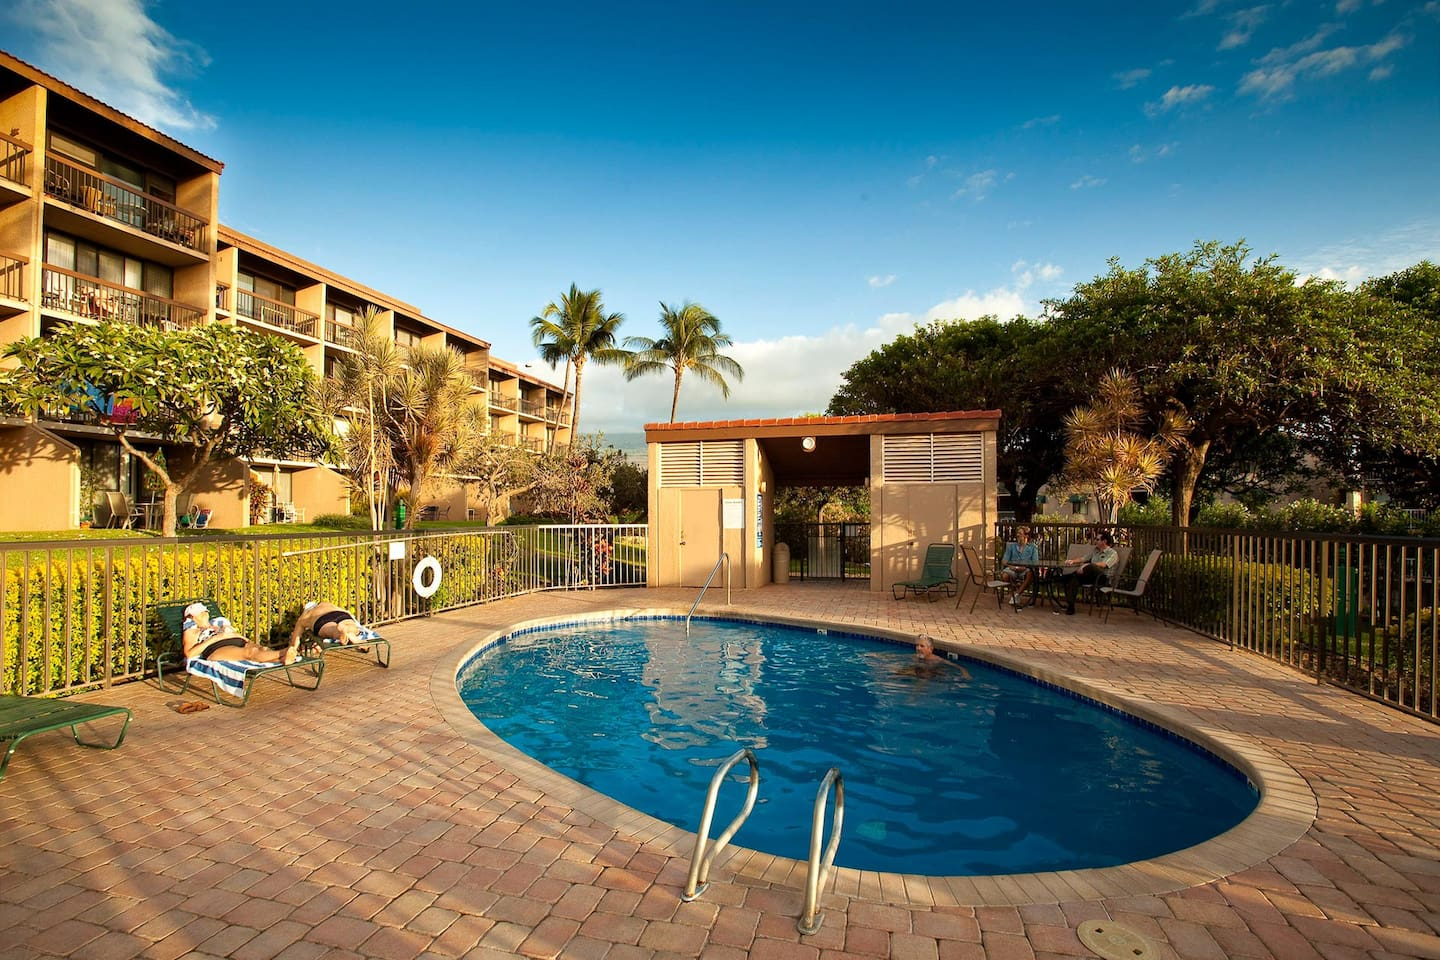 Maui Vista 3405-One of 3 refreshing pools on property